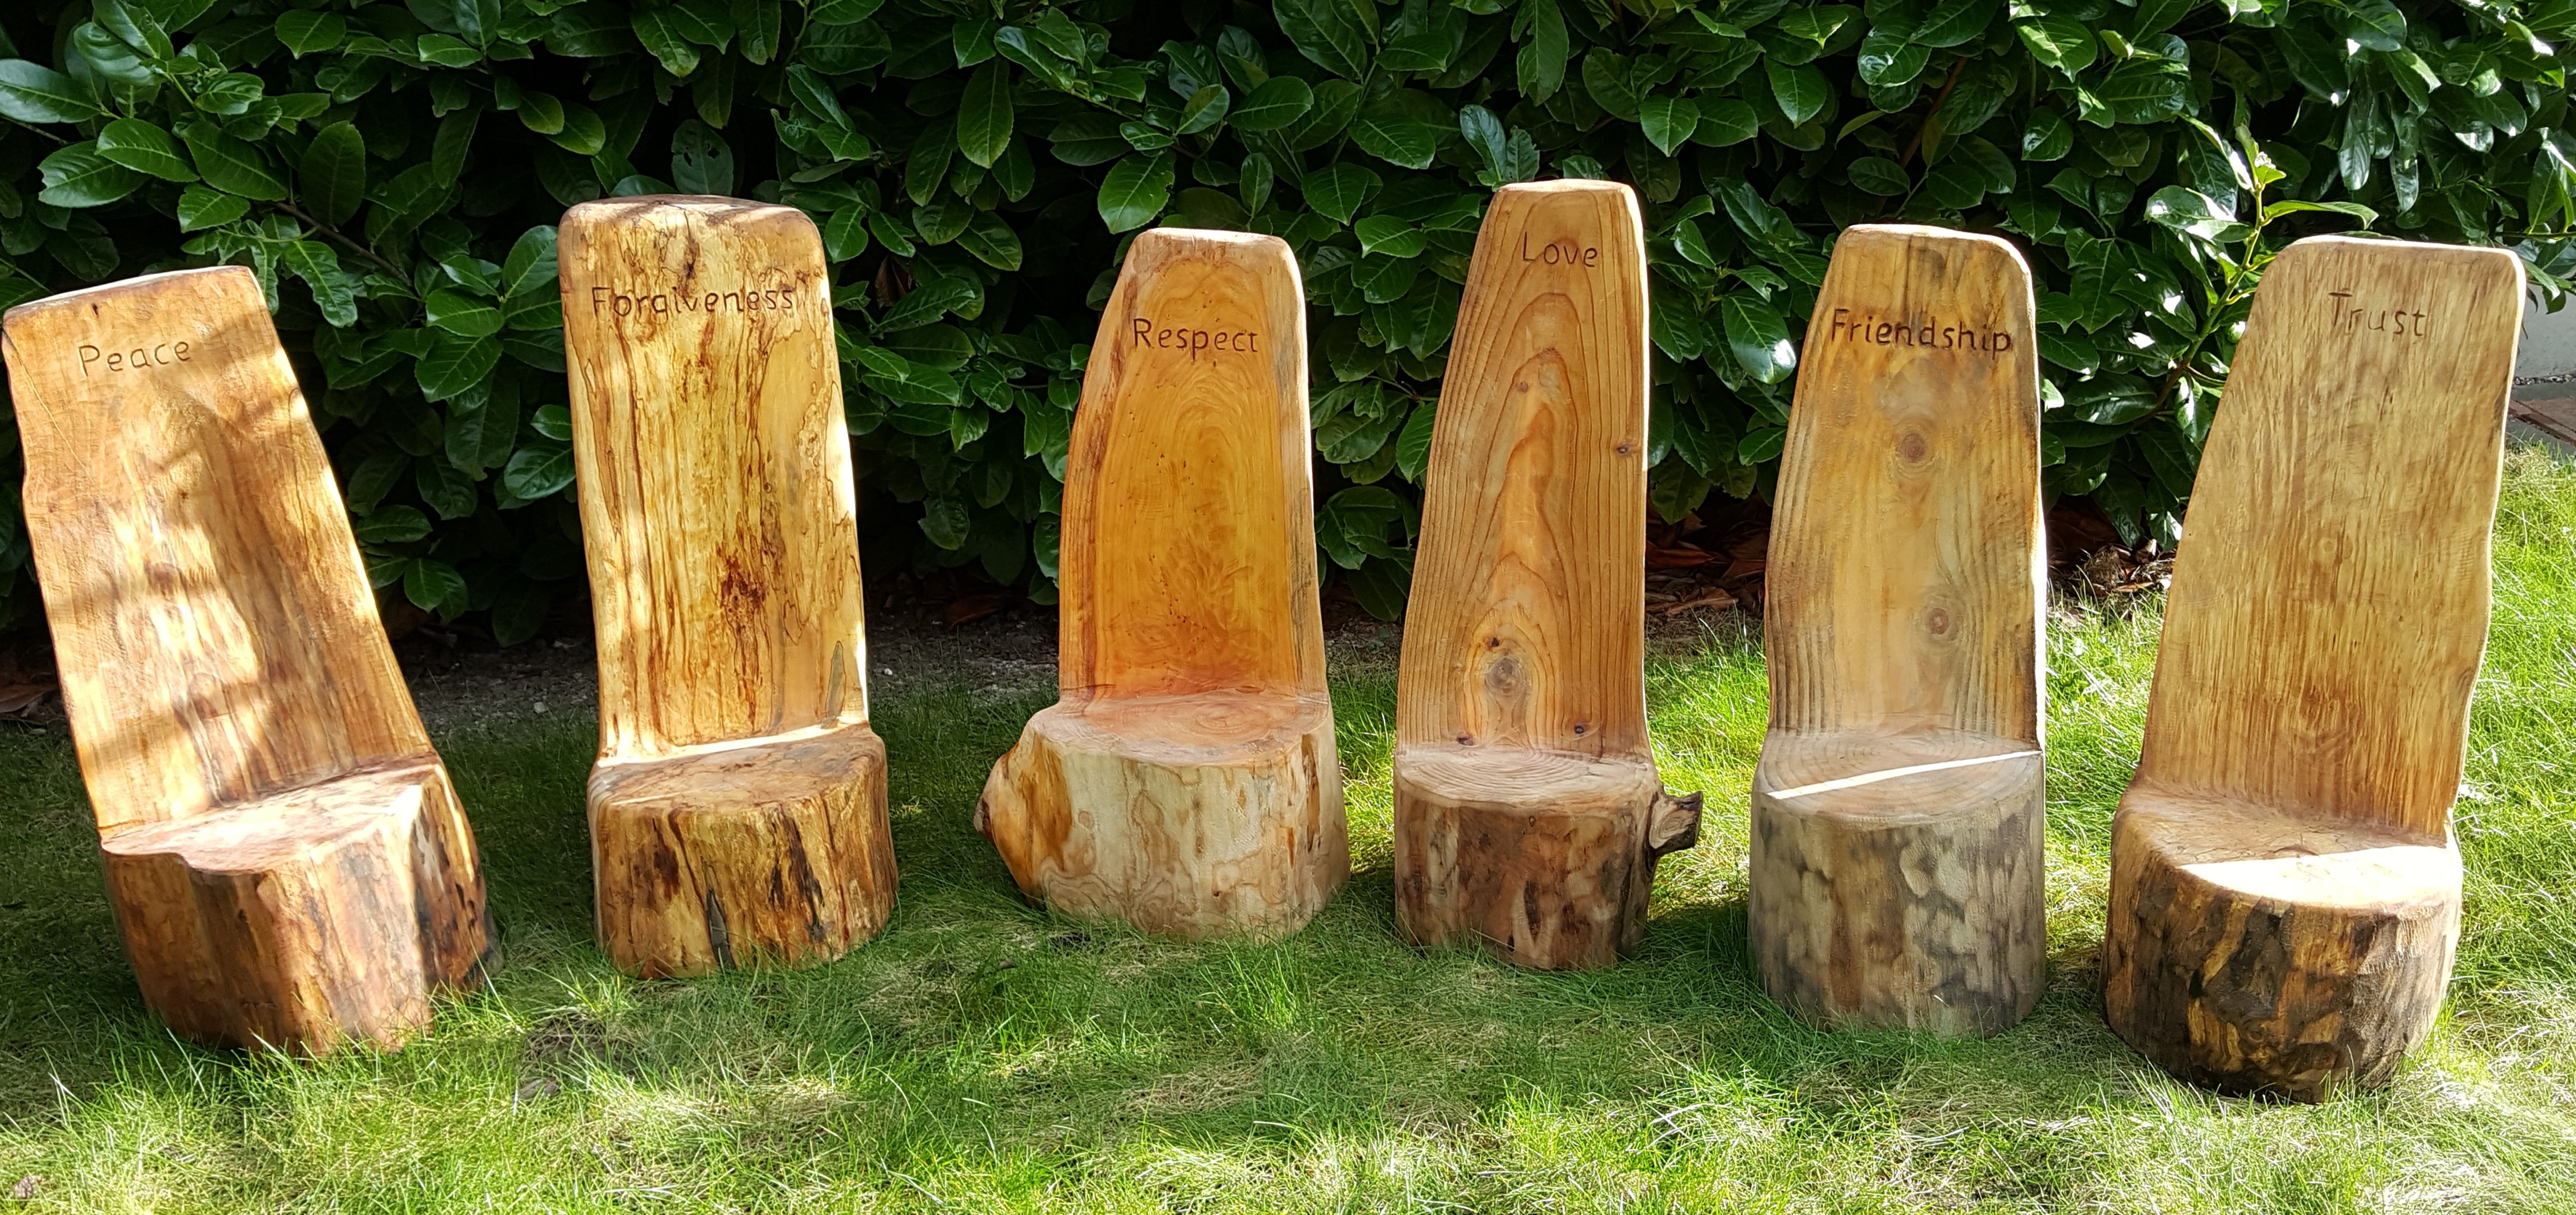 Forest school set of core value chairs bruks tree